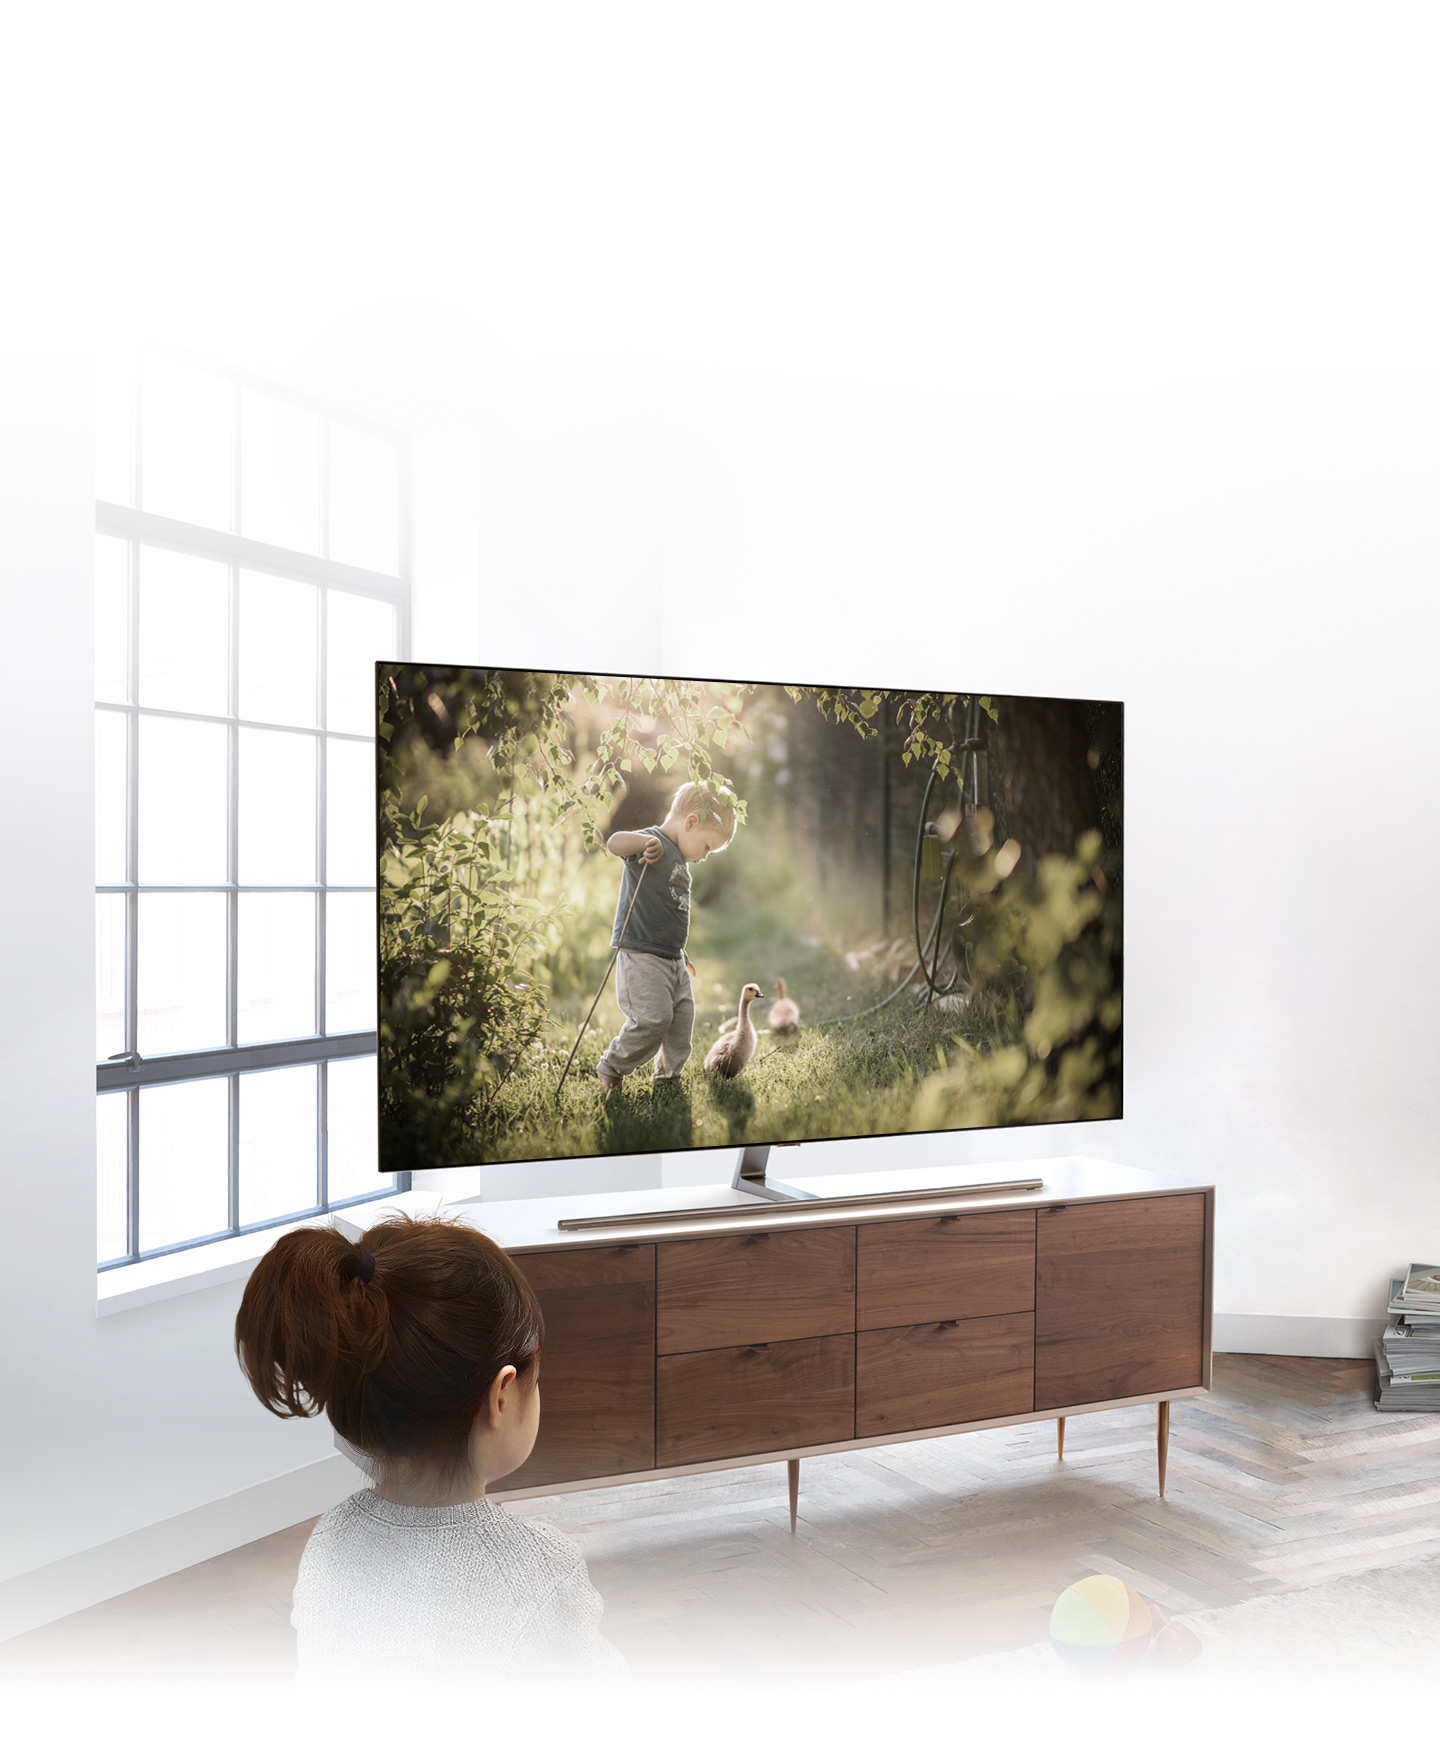 It shows a girl's image and she is watching QLED TV in flank.